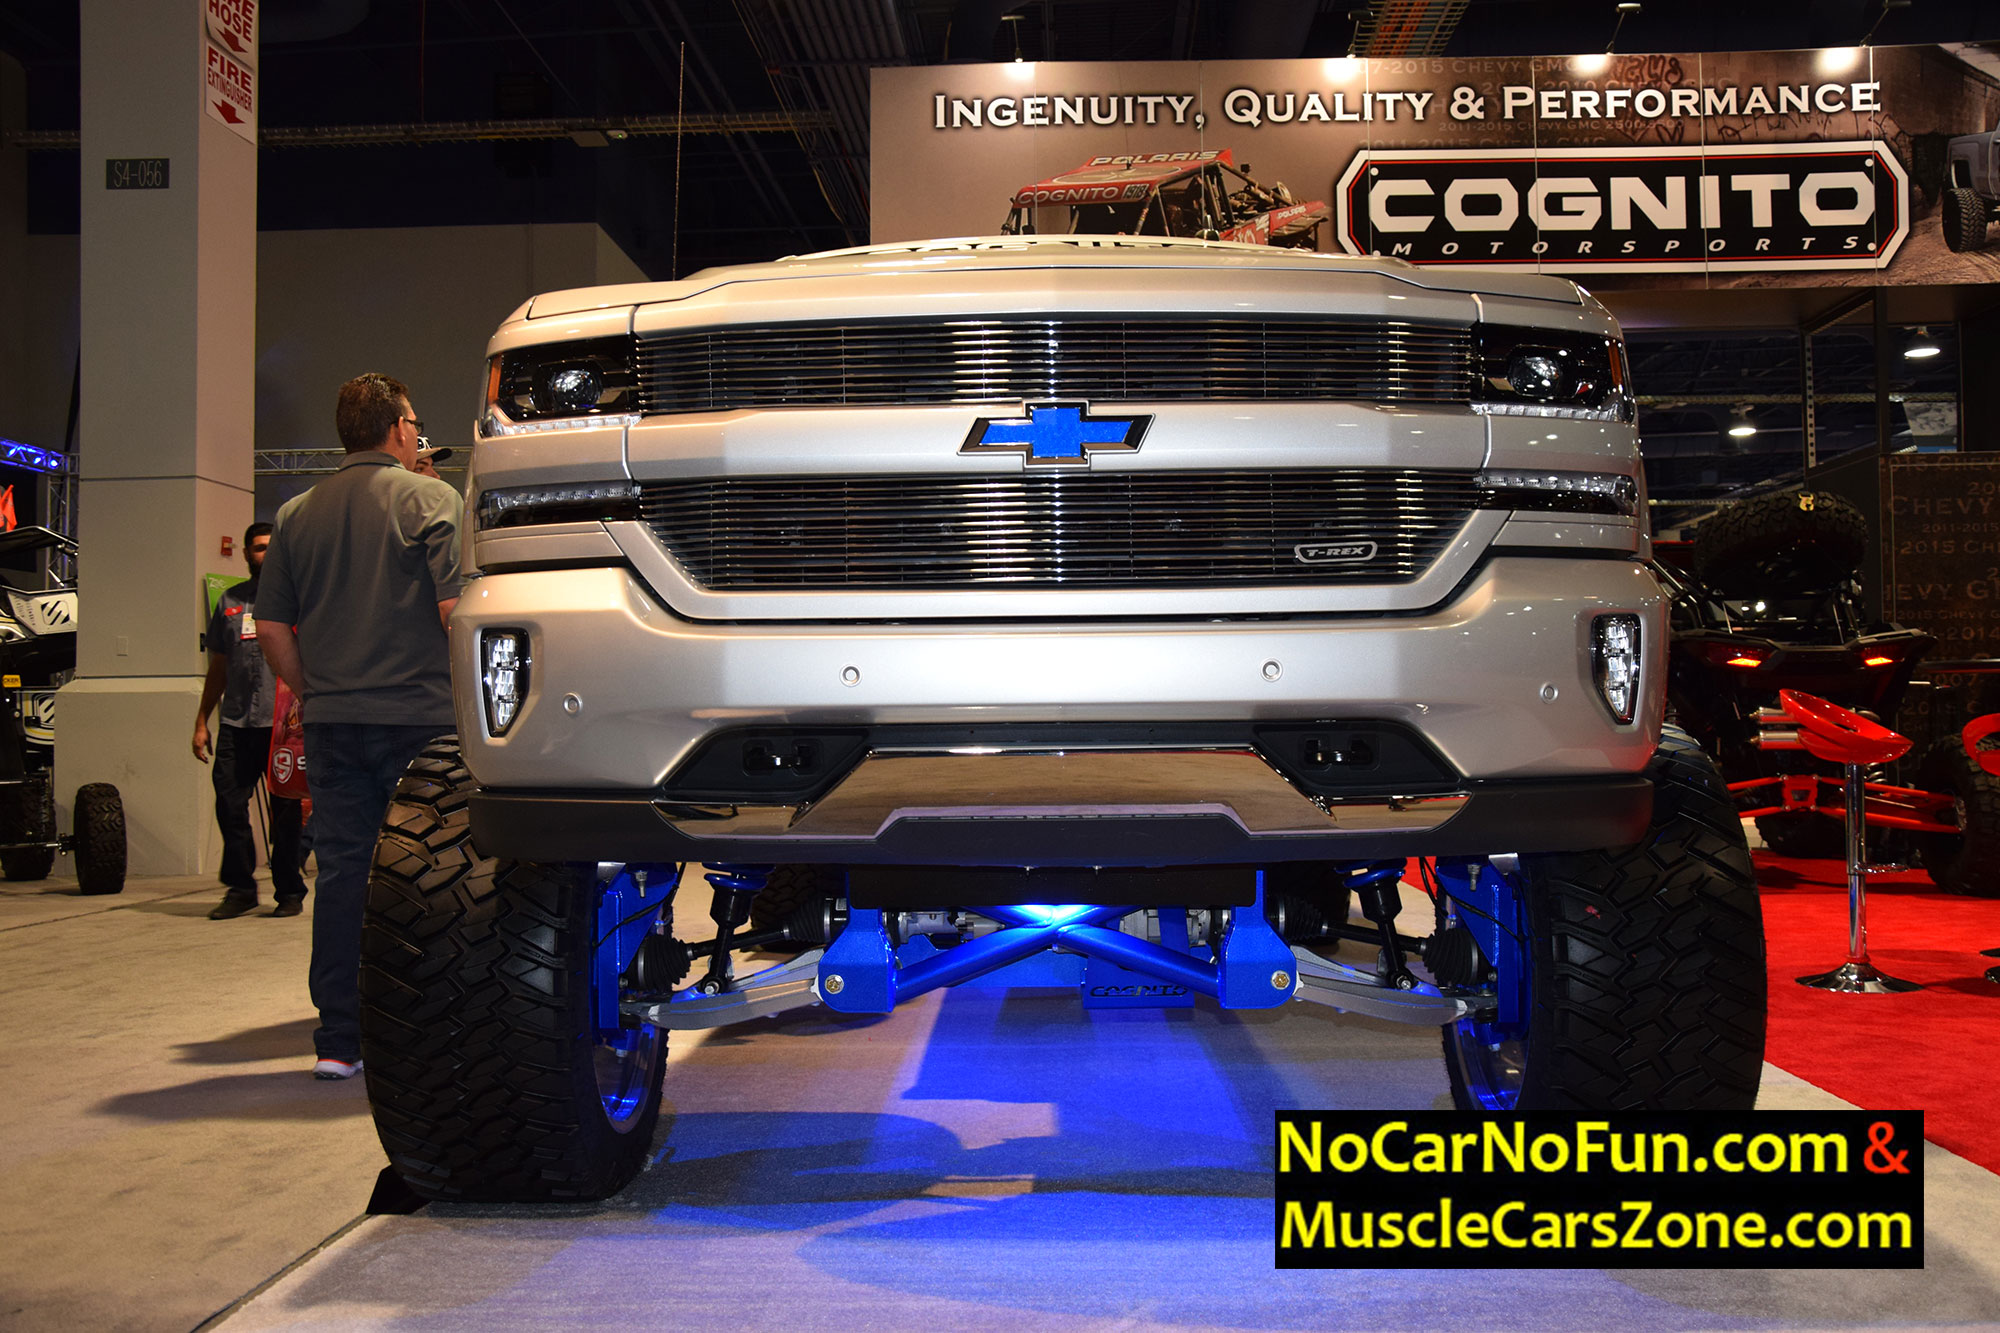 Chevy Lifted Trucks >> Musclecarszone.com Presents You The Very Best Rides Of The SEMA Show 2016 Vegas! Your Favorite ...